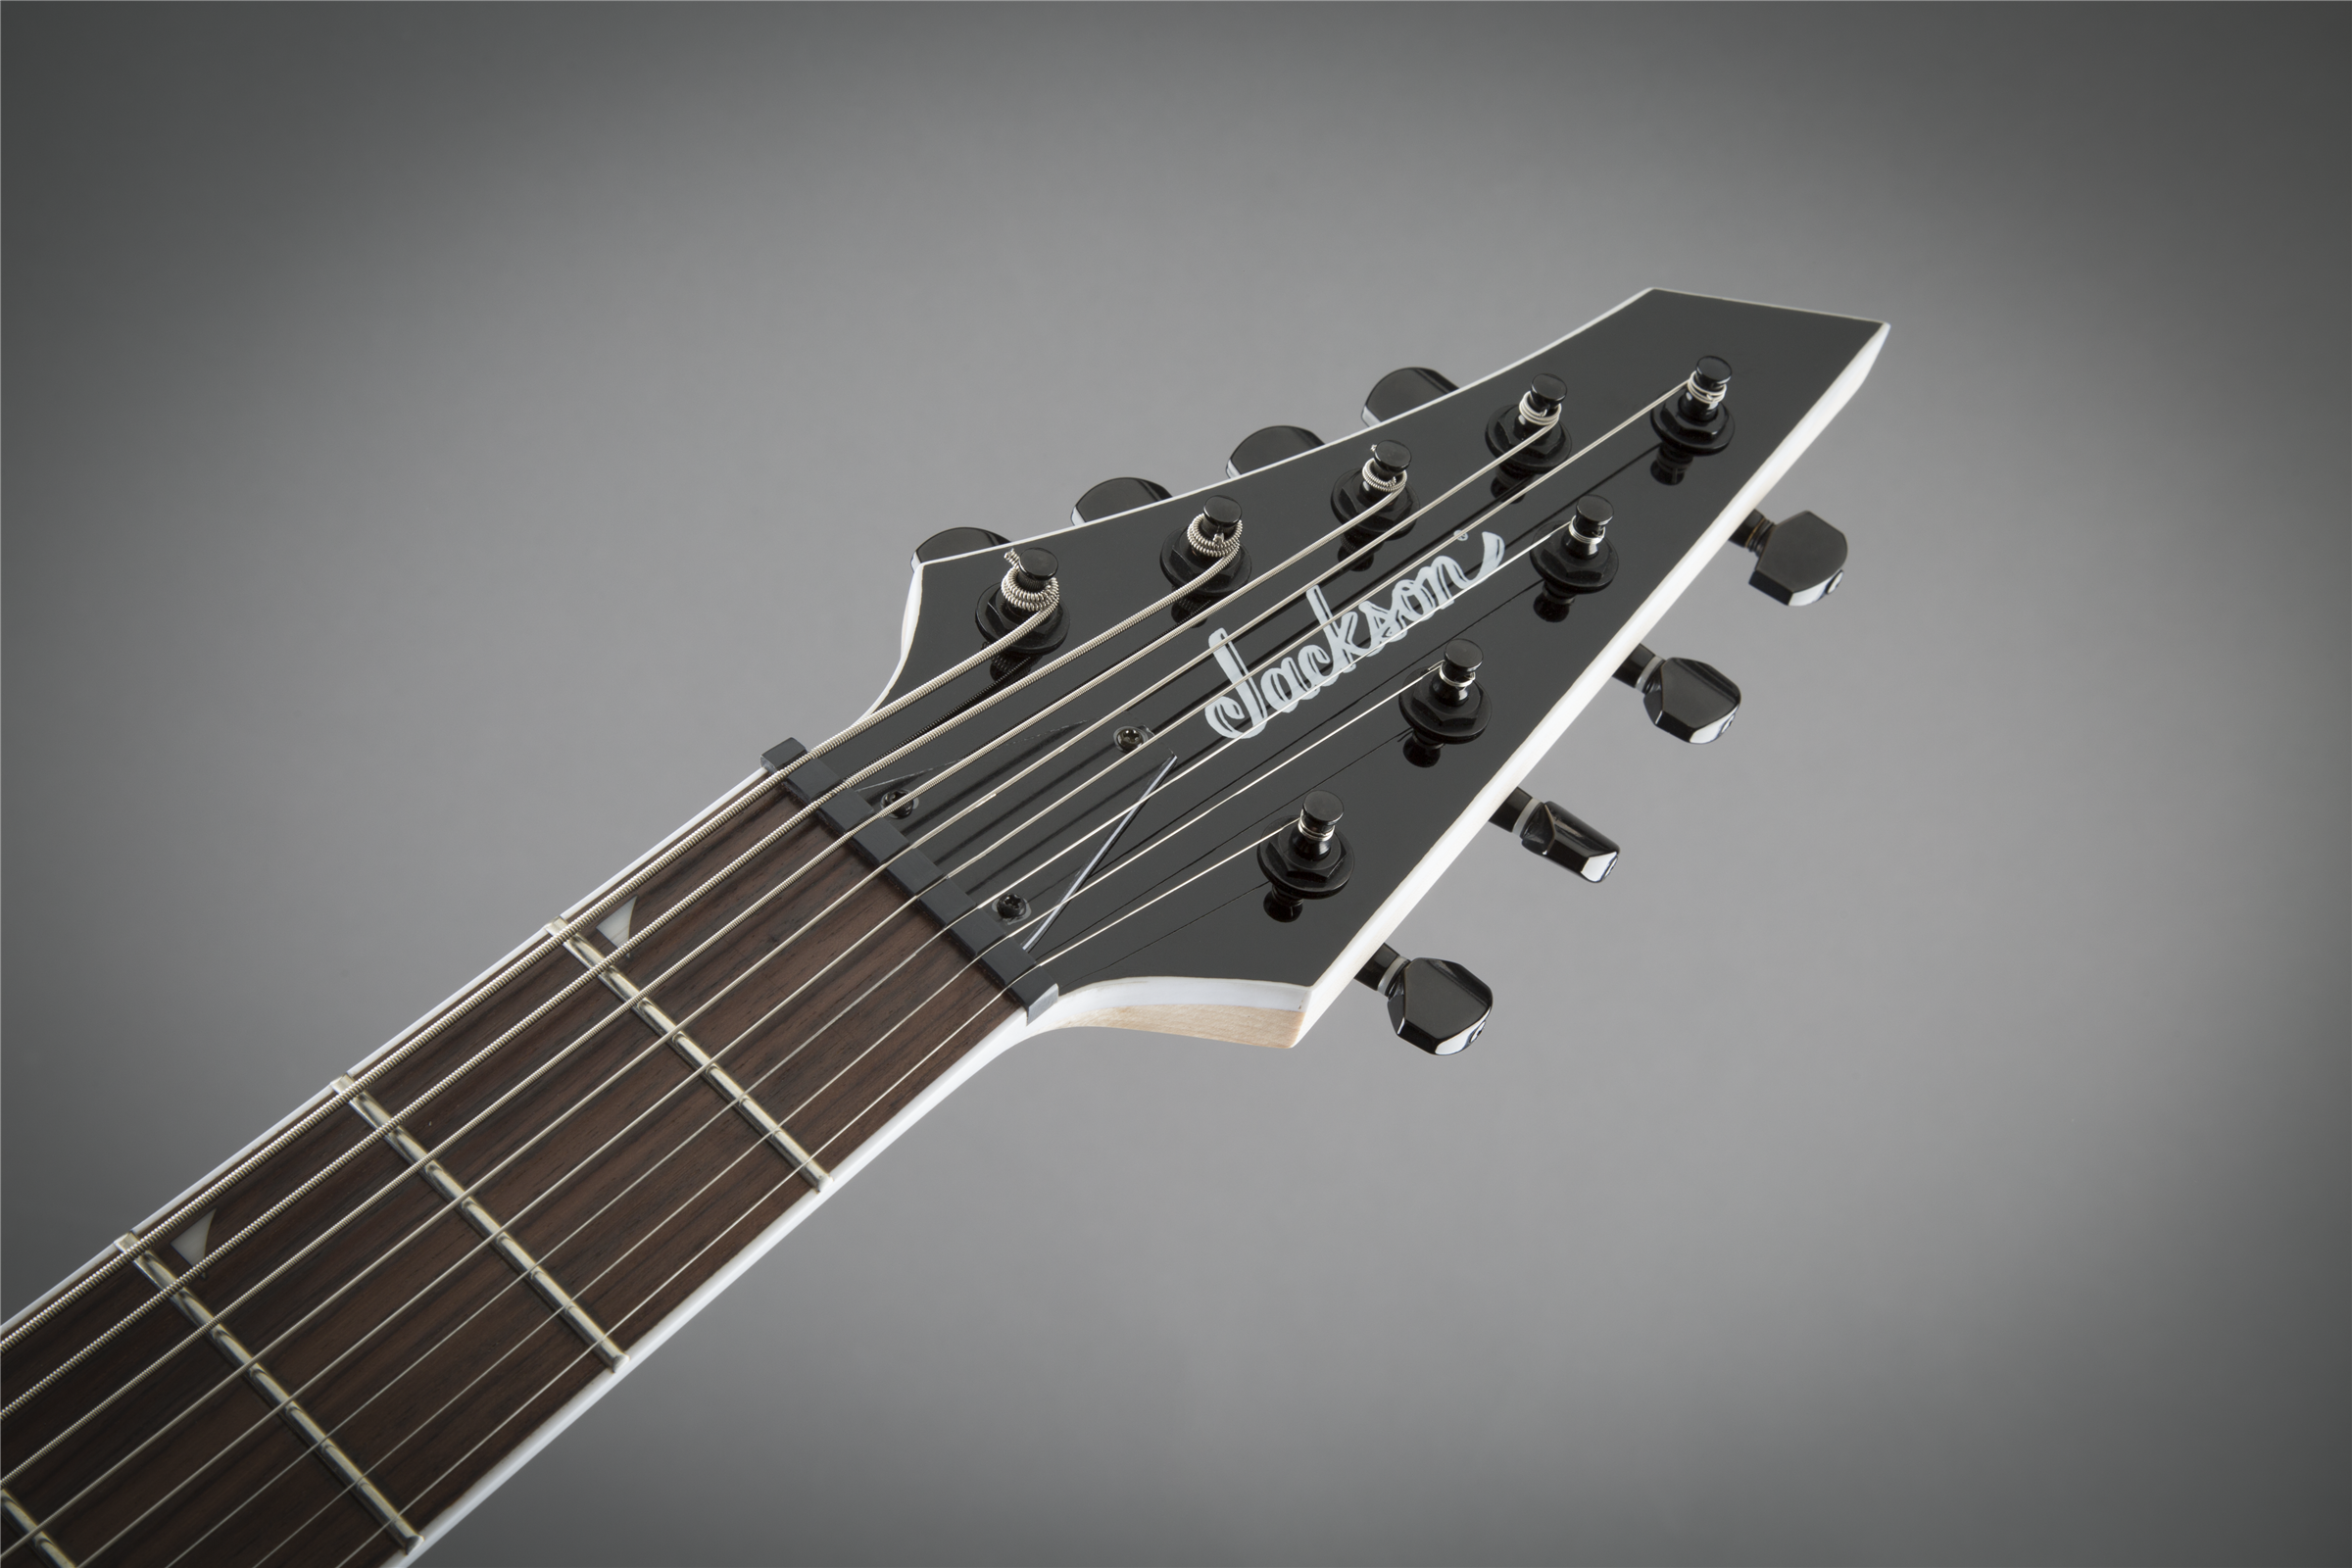 Jackson Wiring Diagram Guitar : Jackson rhoads v wiring diagram for evolution